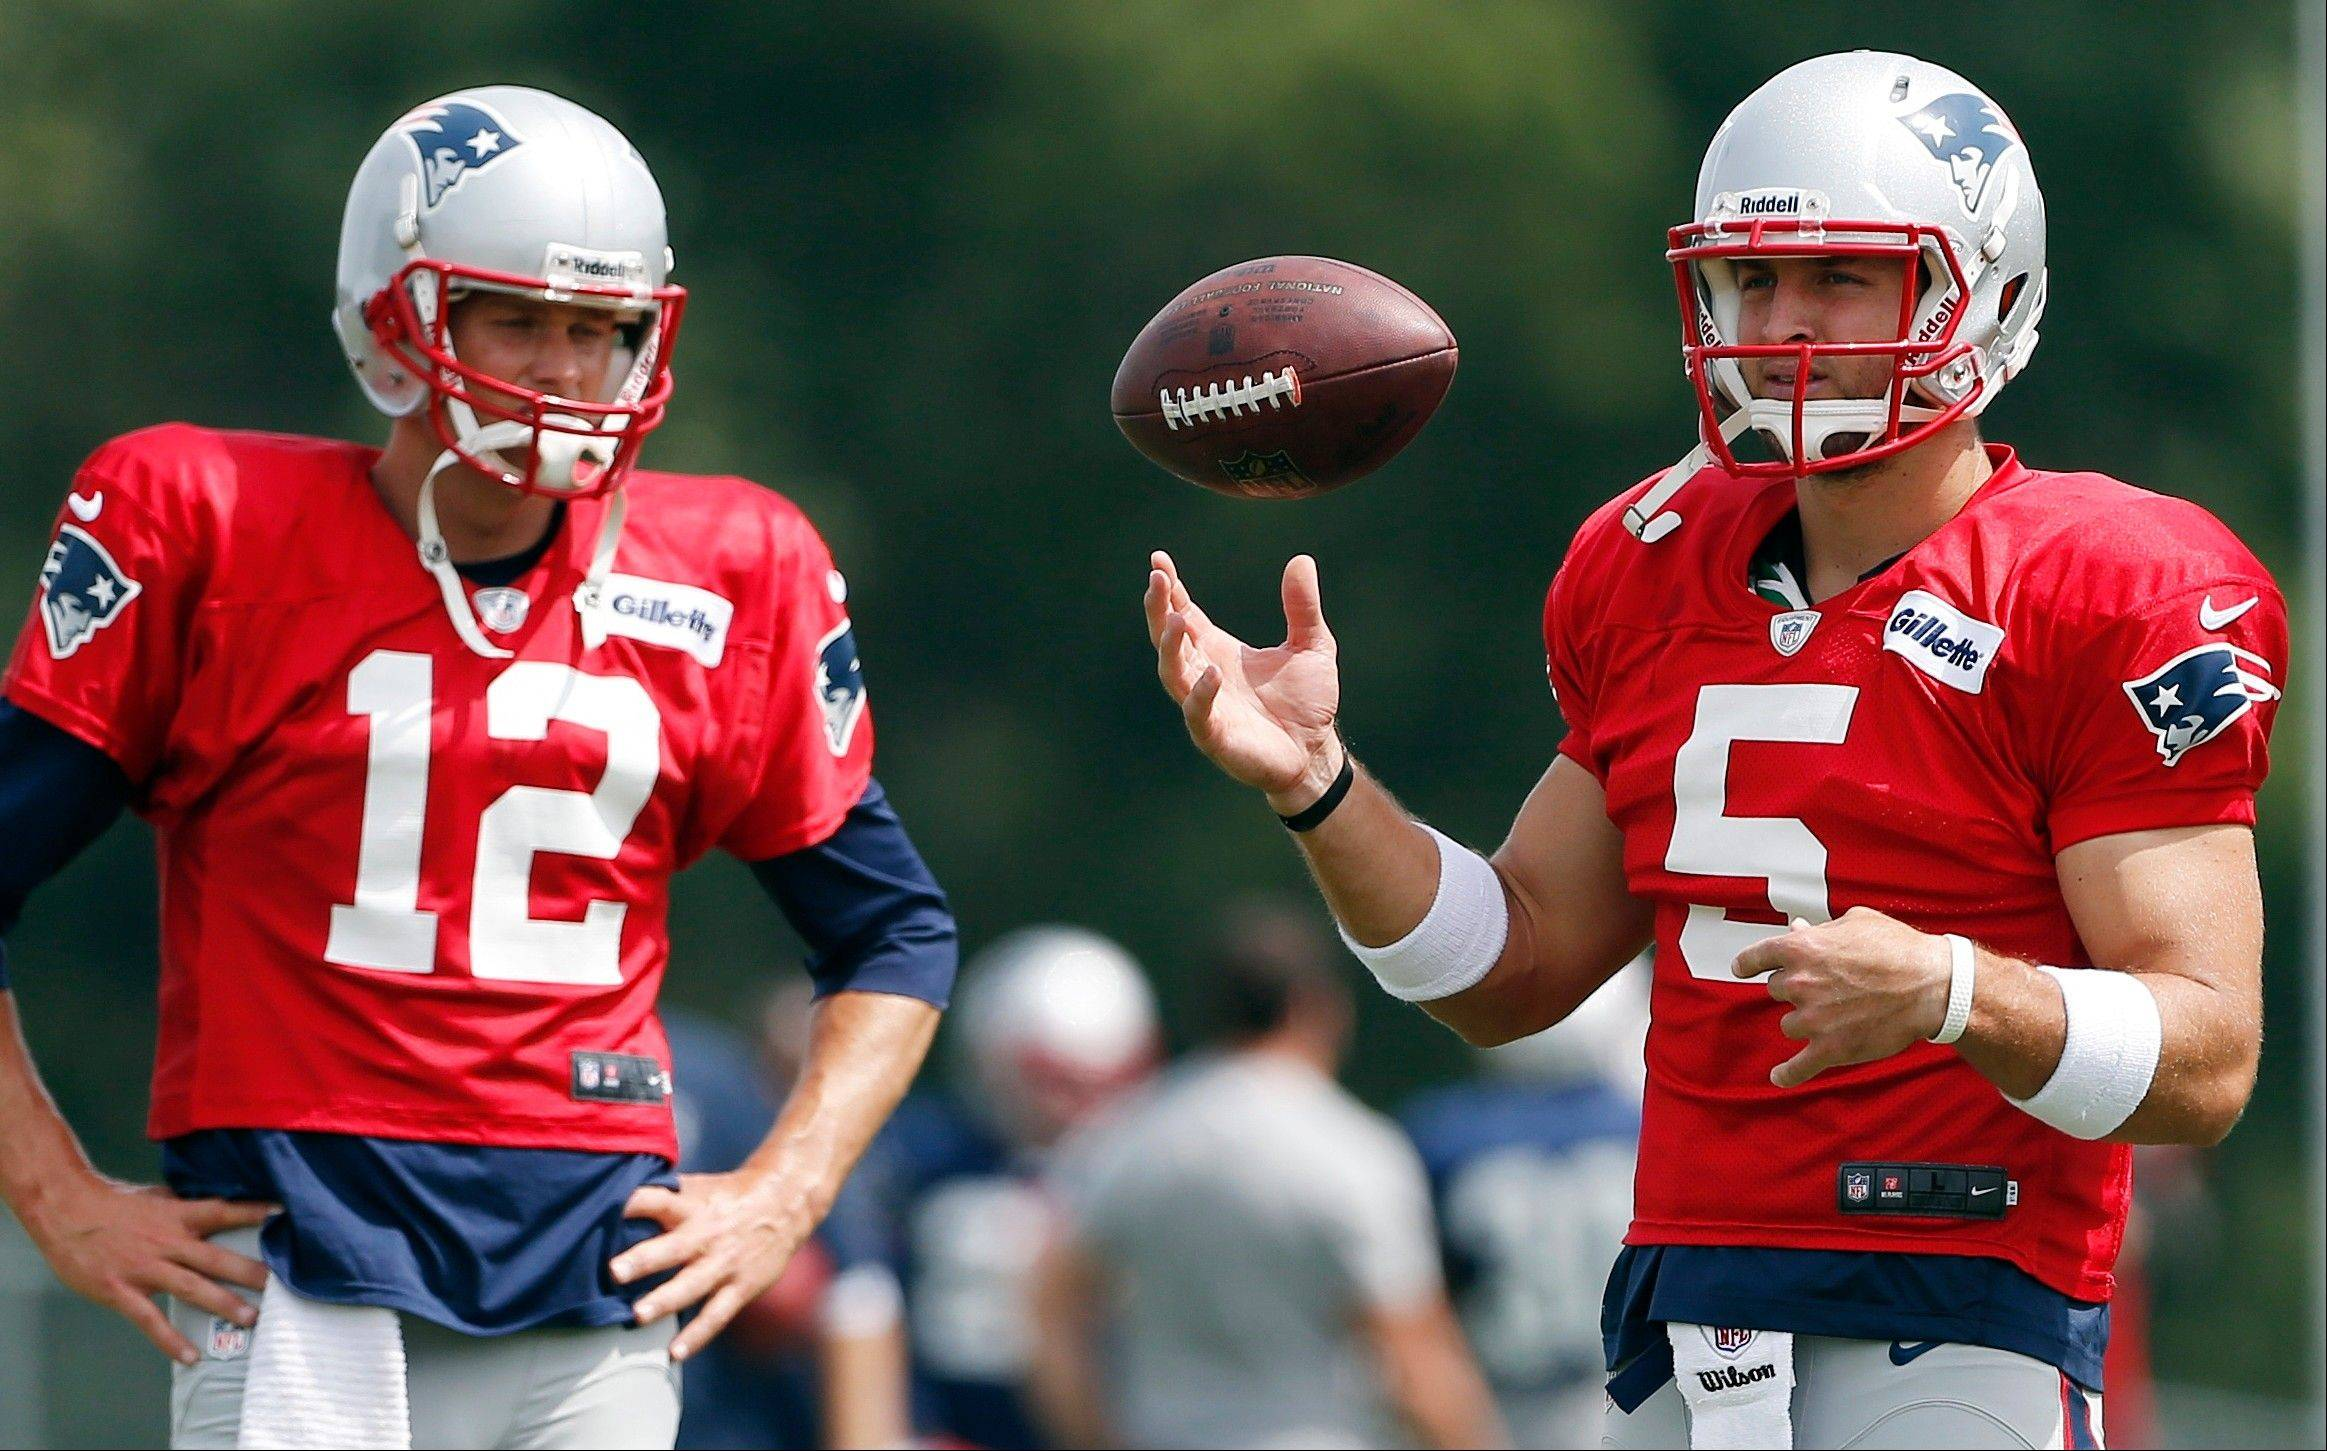 New England Patriots quarterback Tim Tebow (5) tosses a ball next to quarterback Tom Brady (12) during NFL football practice in Foxborough, Mass., Monday, Aug. 19, 2013.